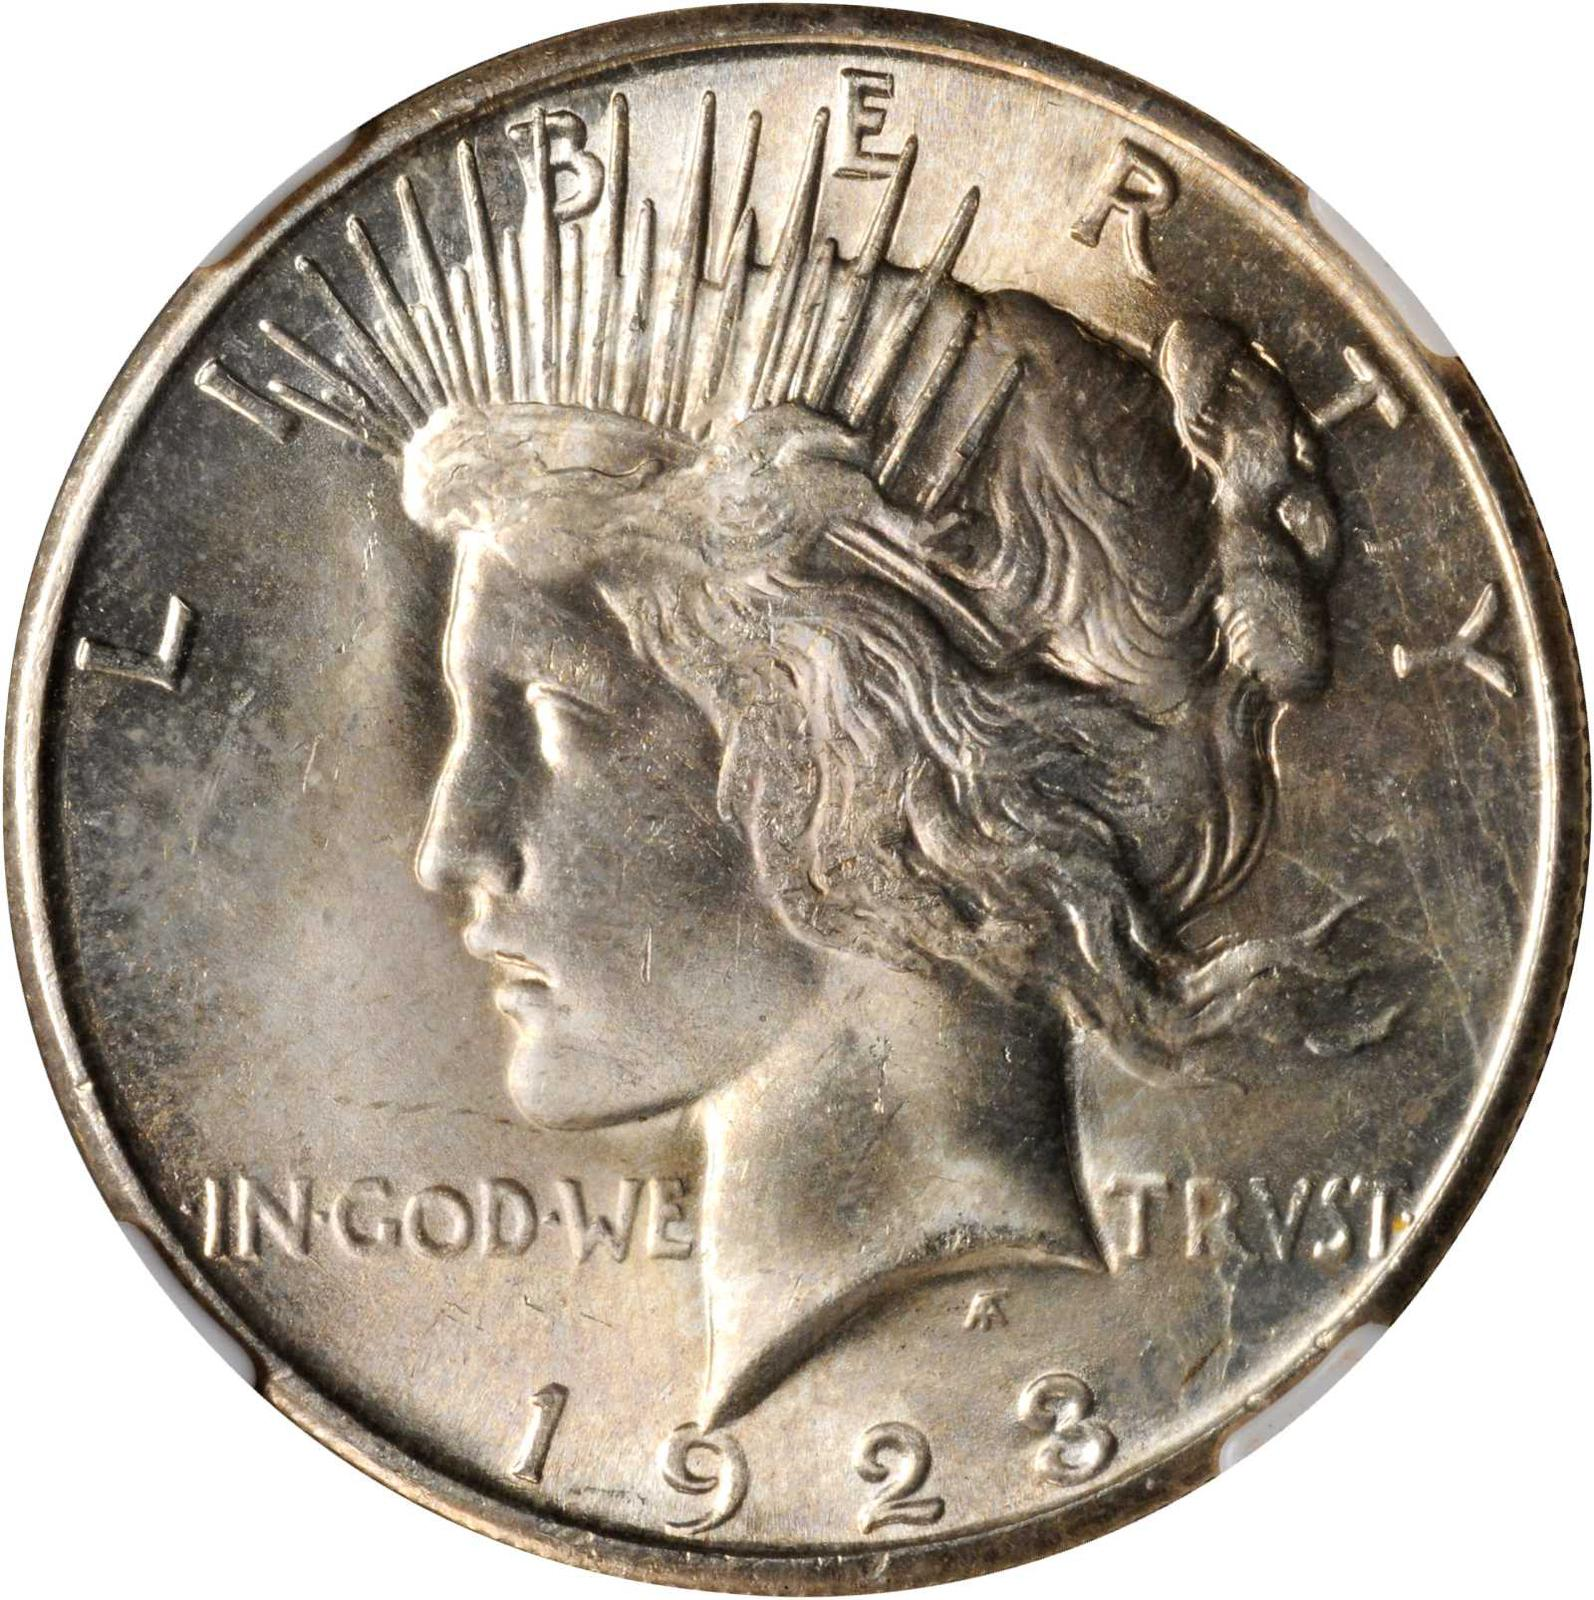 Value 1923 Silver Dollar Worth Today